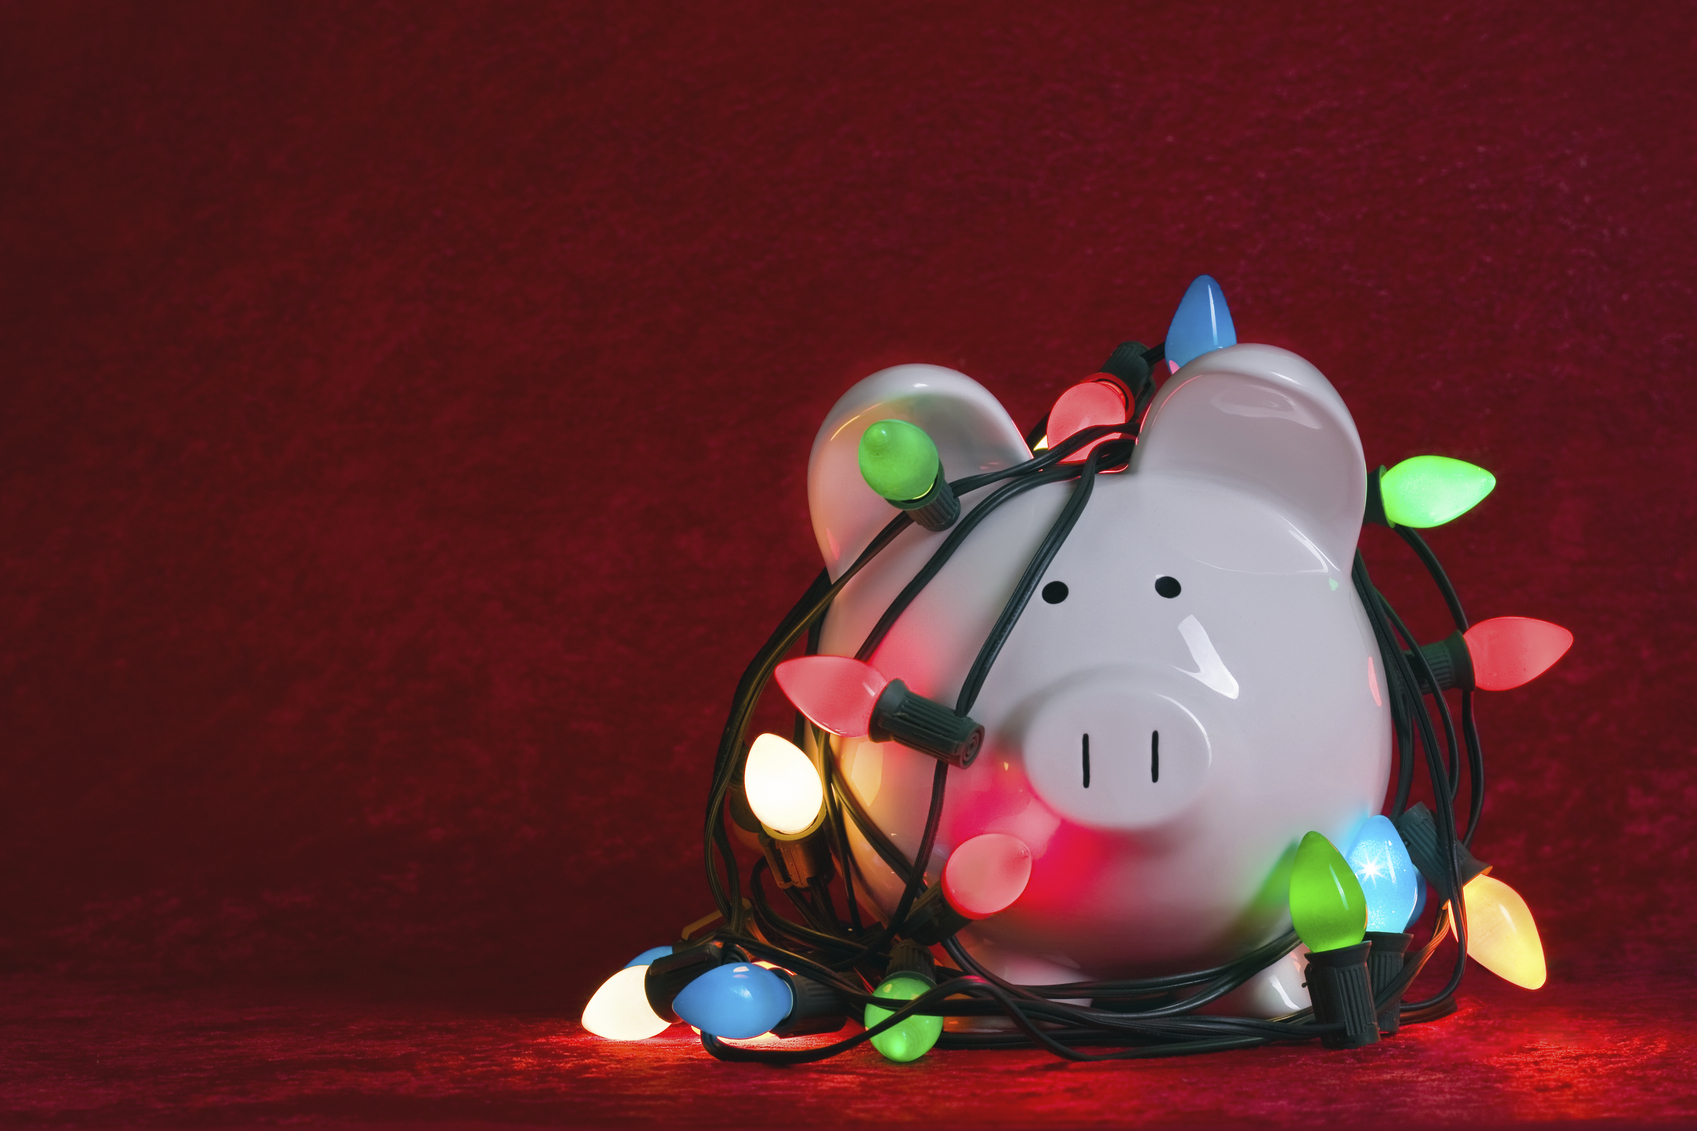 Piggy Bank tangled in colorful holiday lightsRelated images: